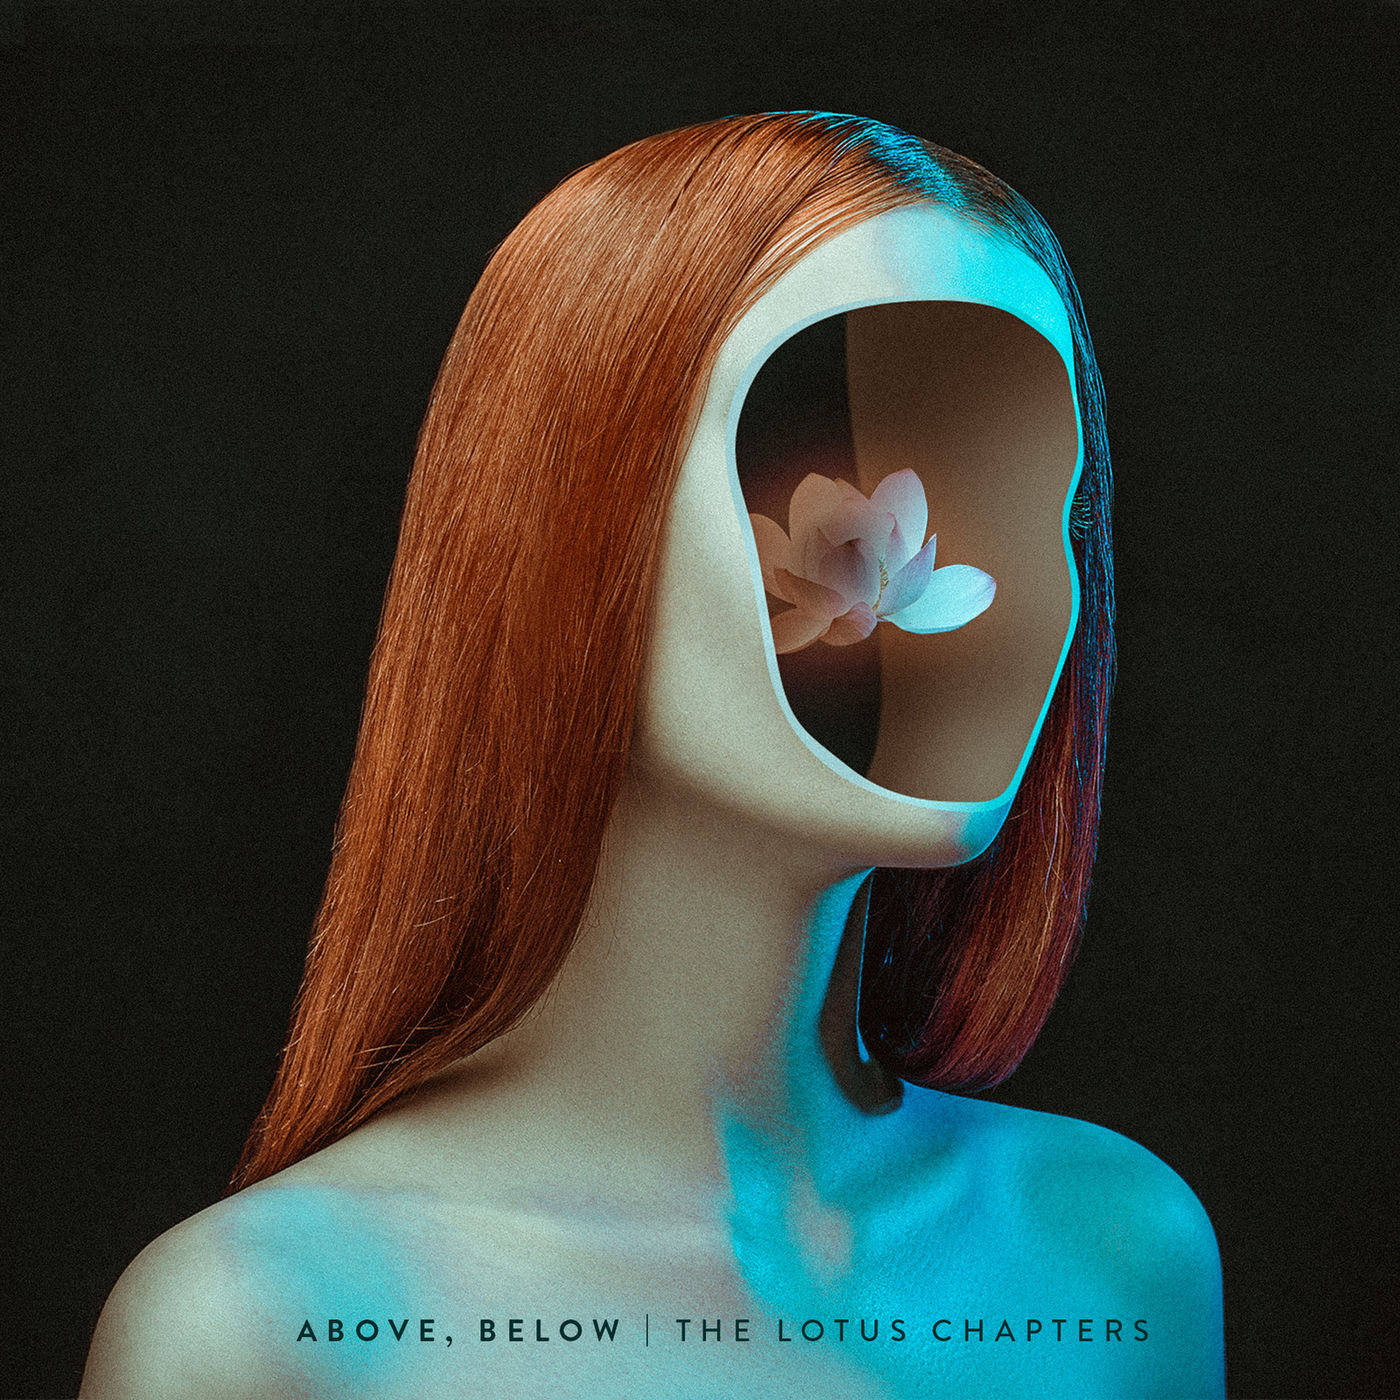 Above, Below - The Lotus Chapters (2019)